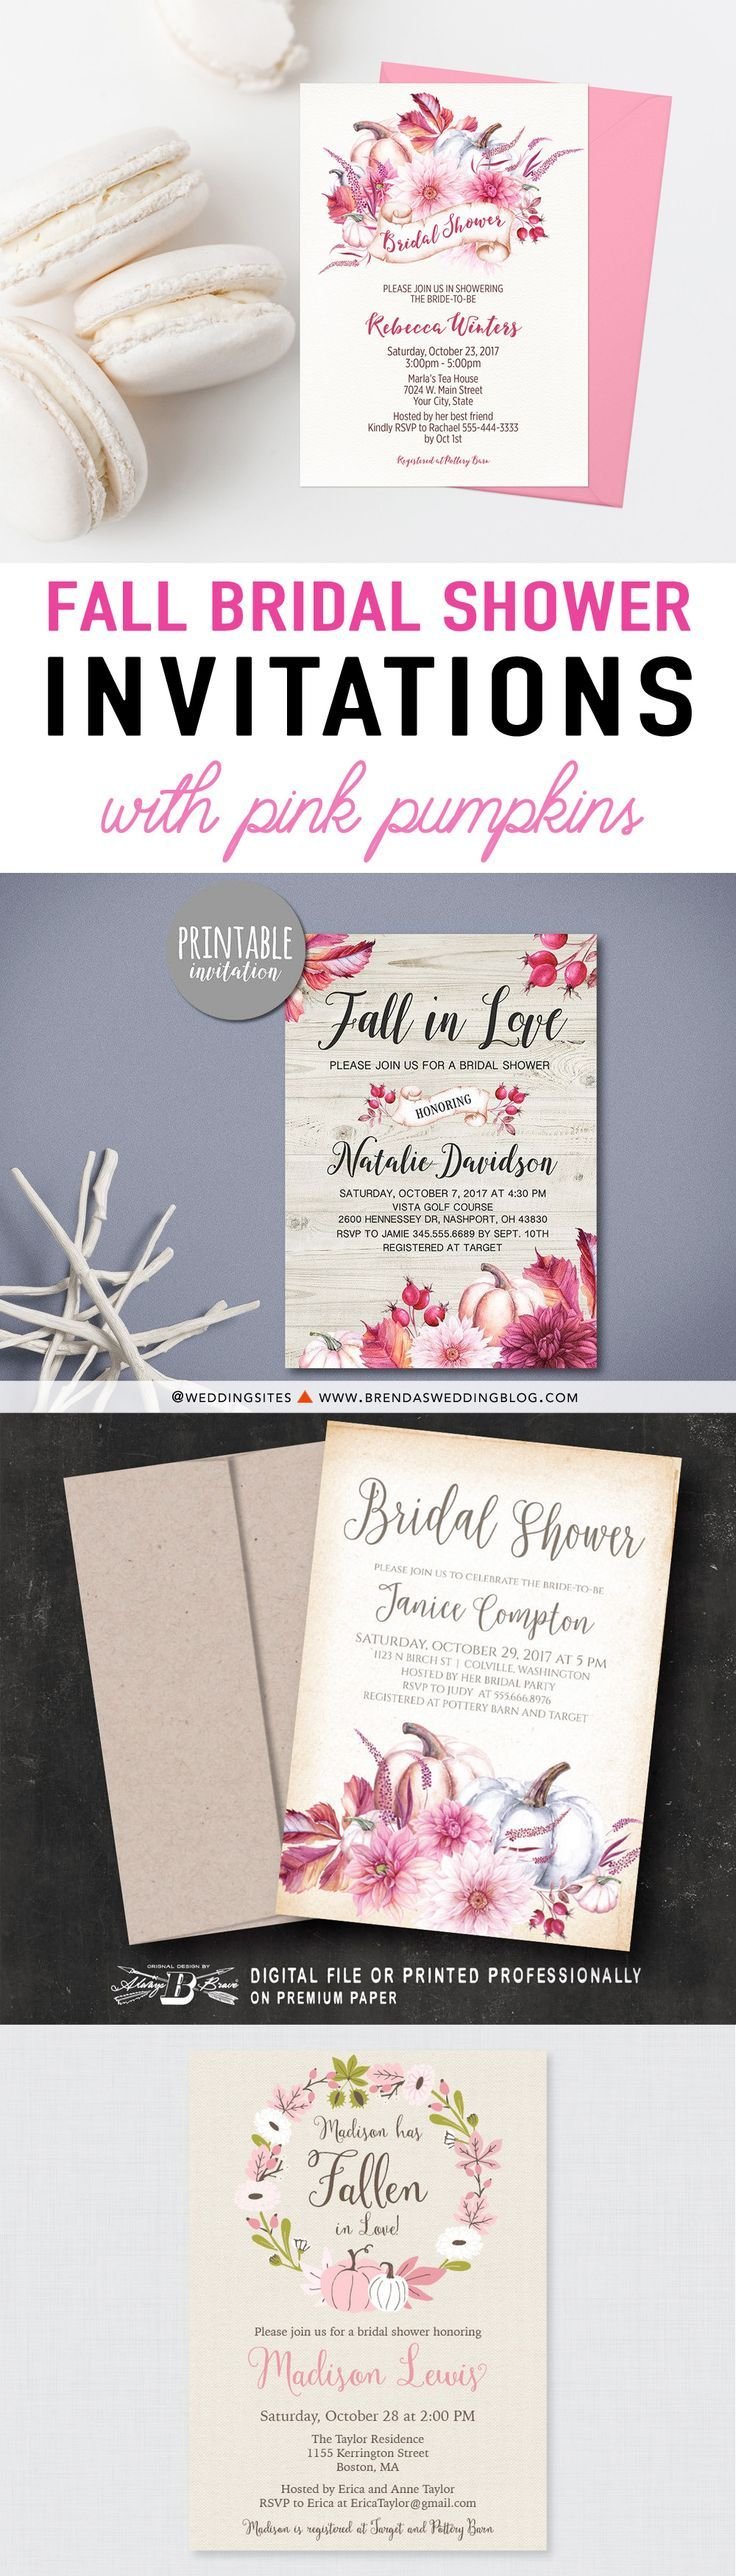 Invitations Free eCards and Party Planning Ideas